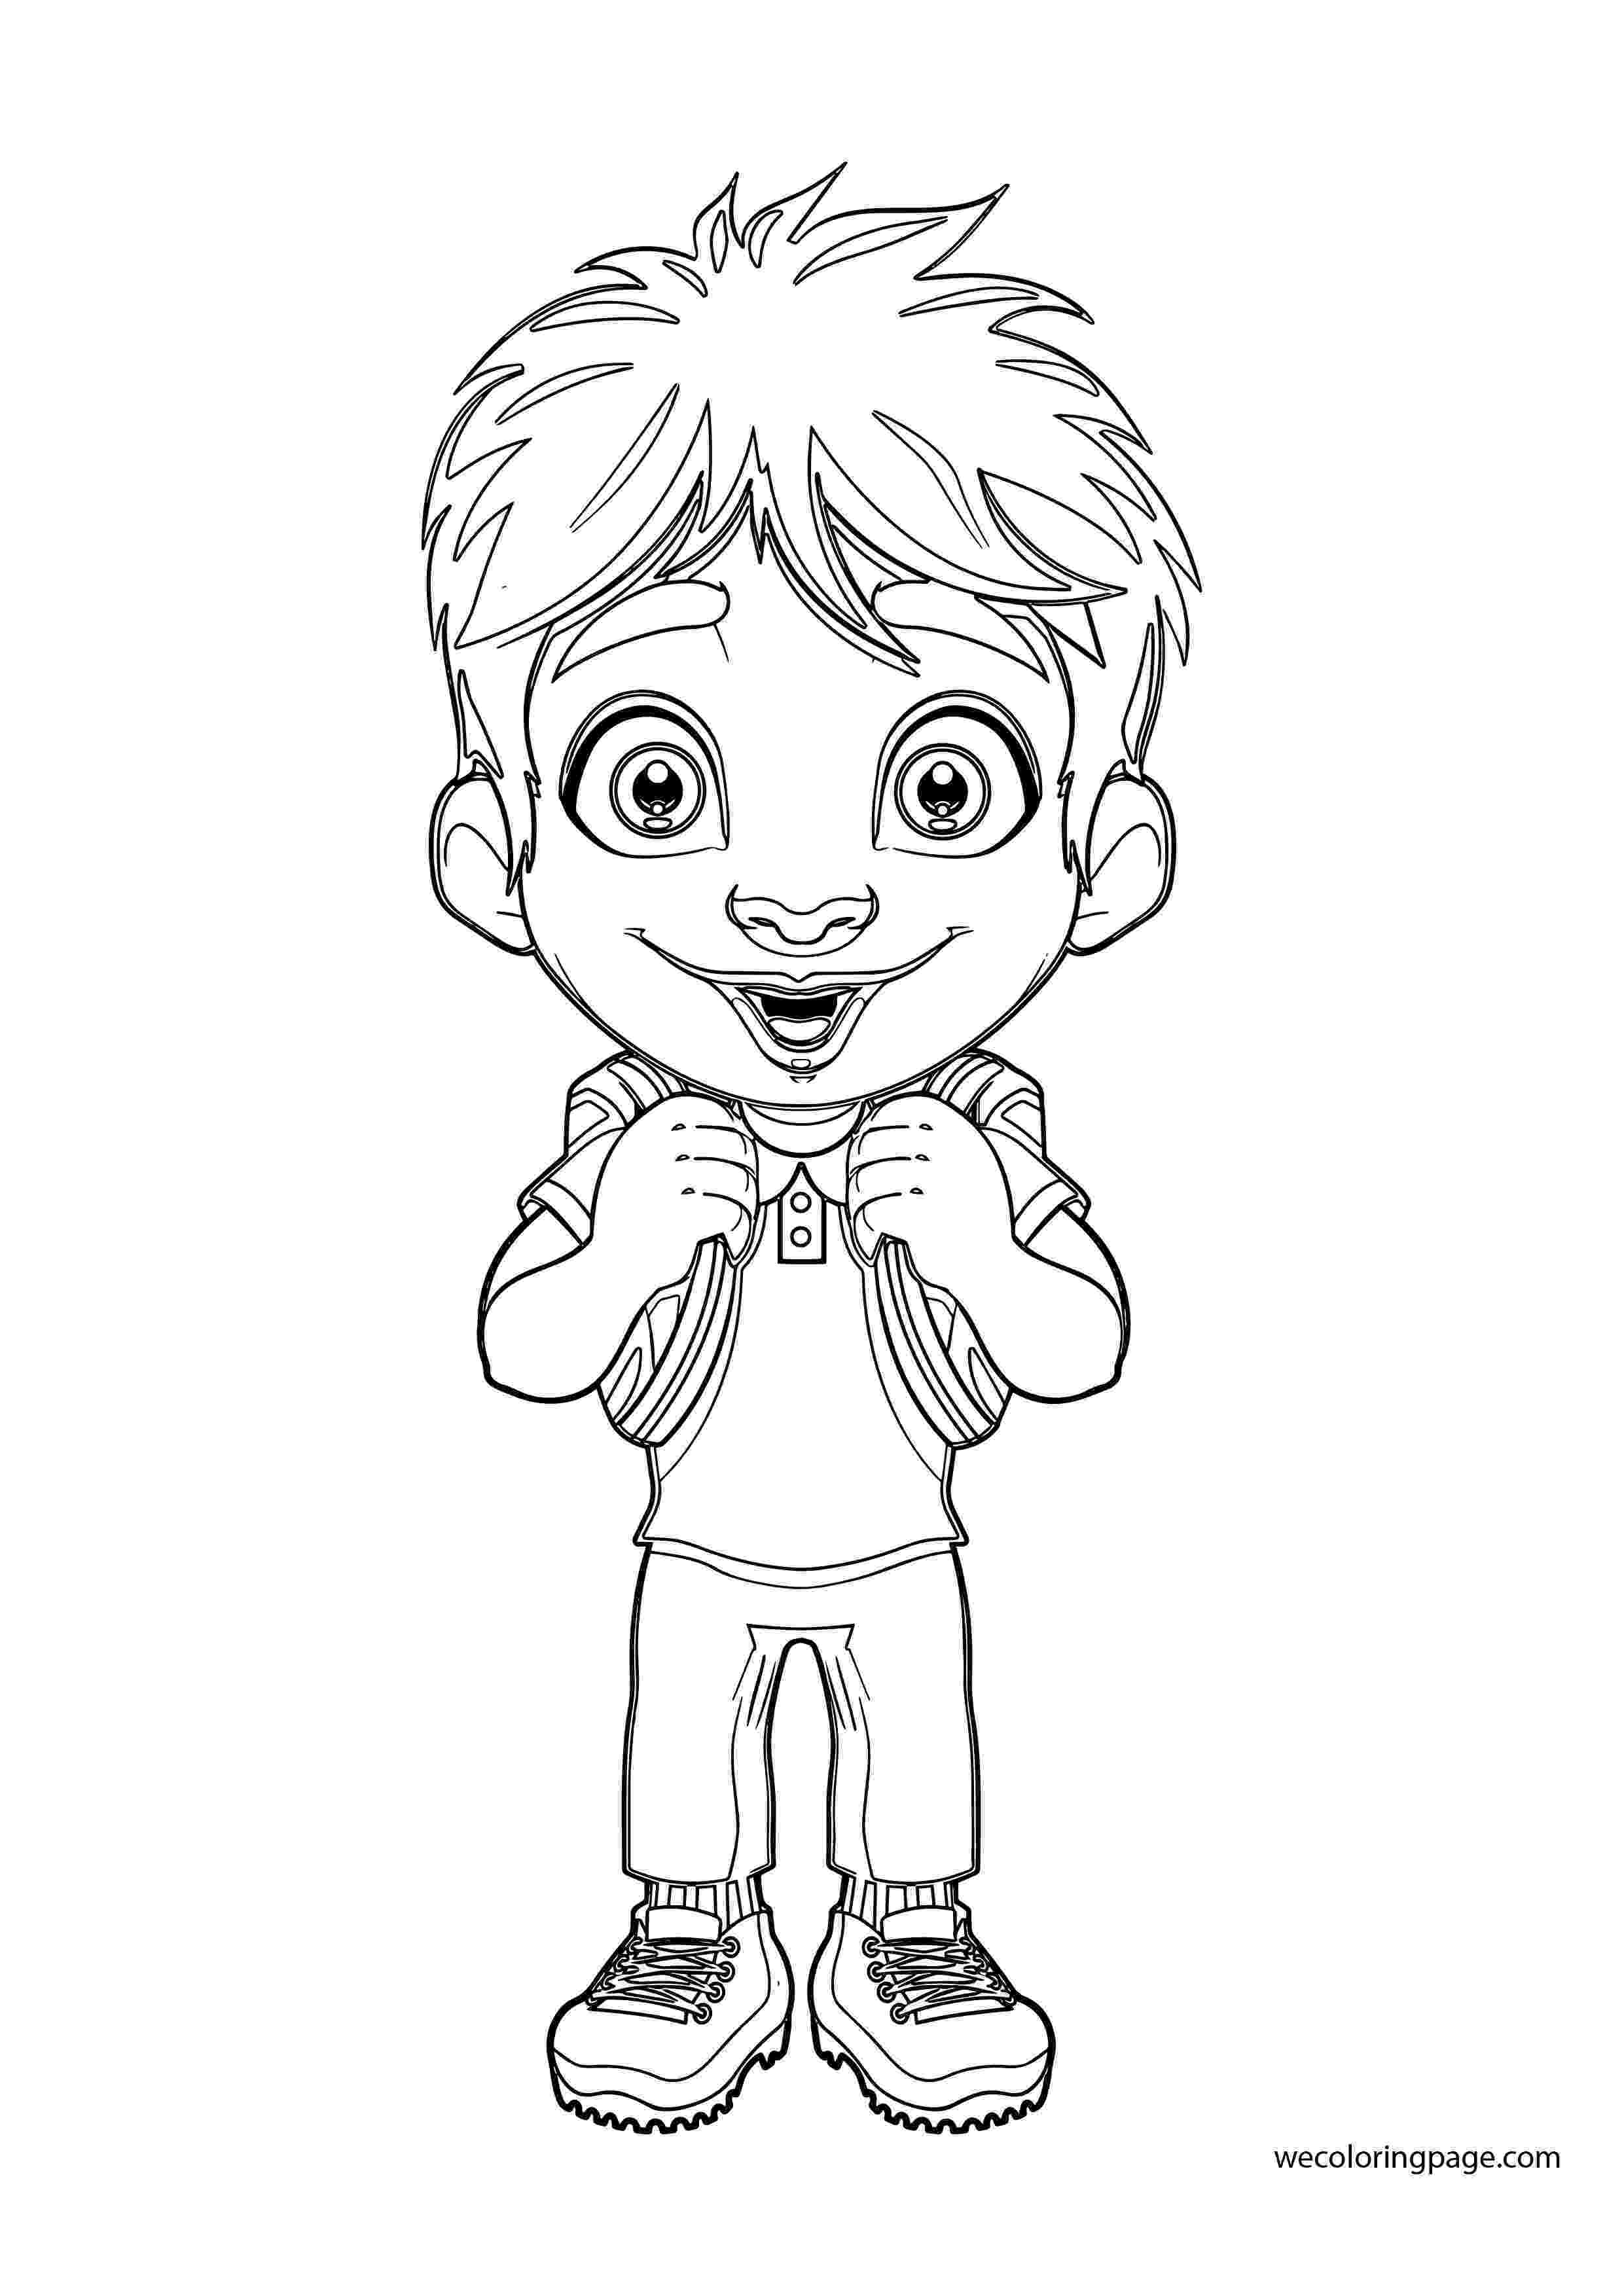 student coloring page school student eat from lunchbox colouring pages coloring student page coloring